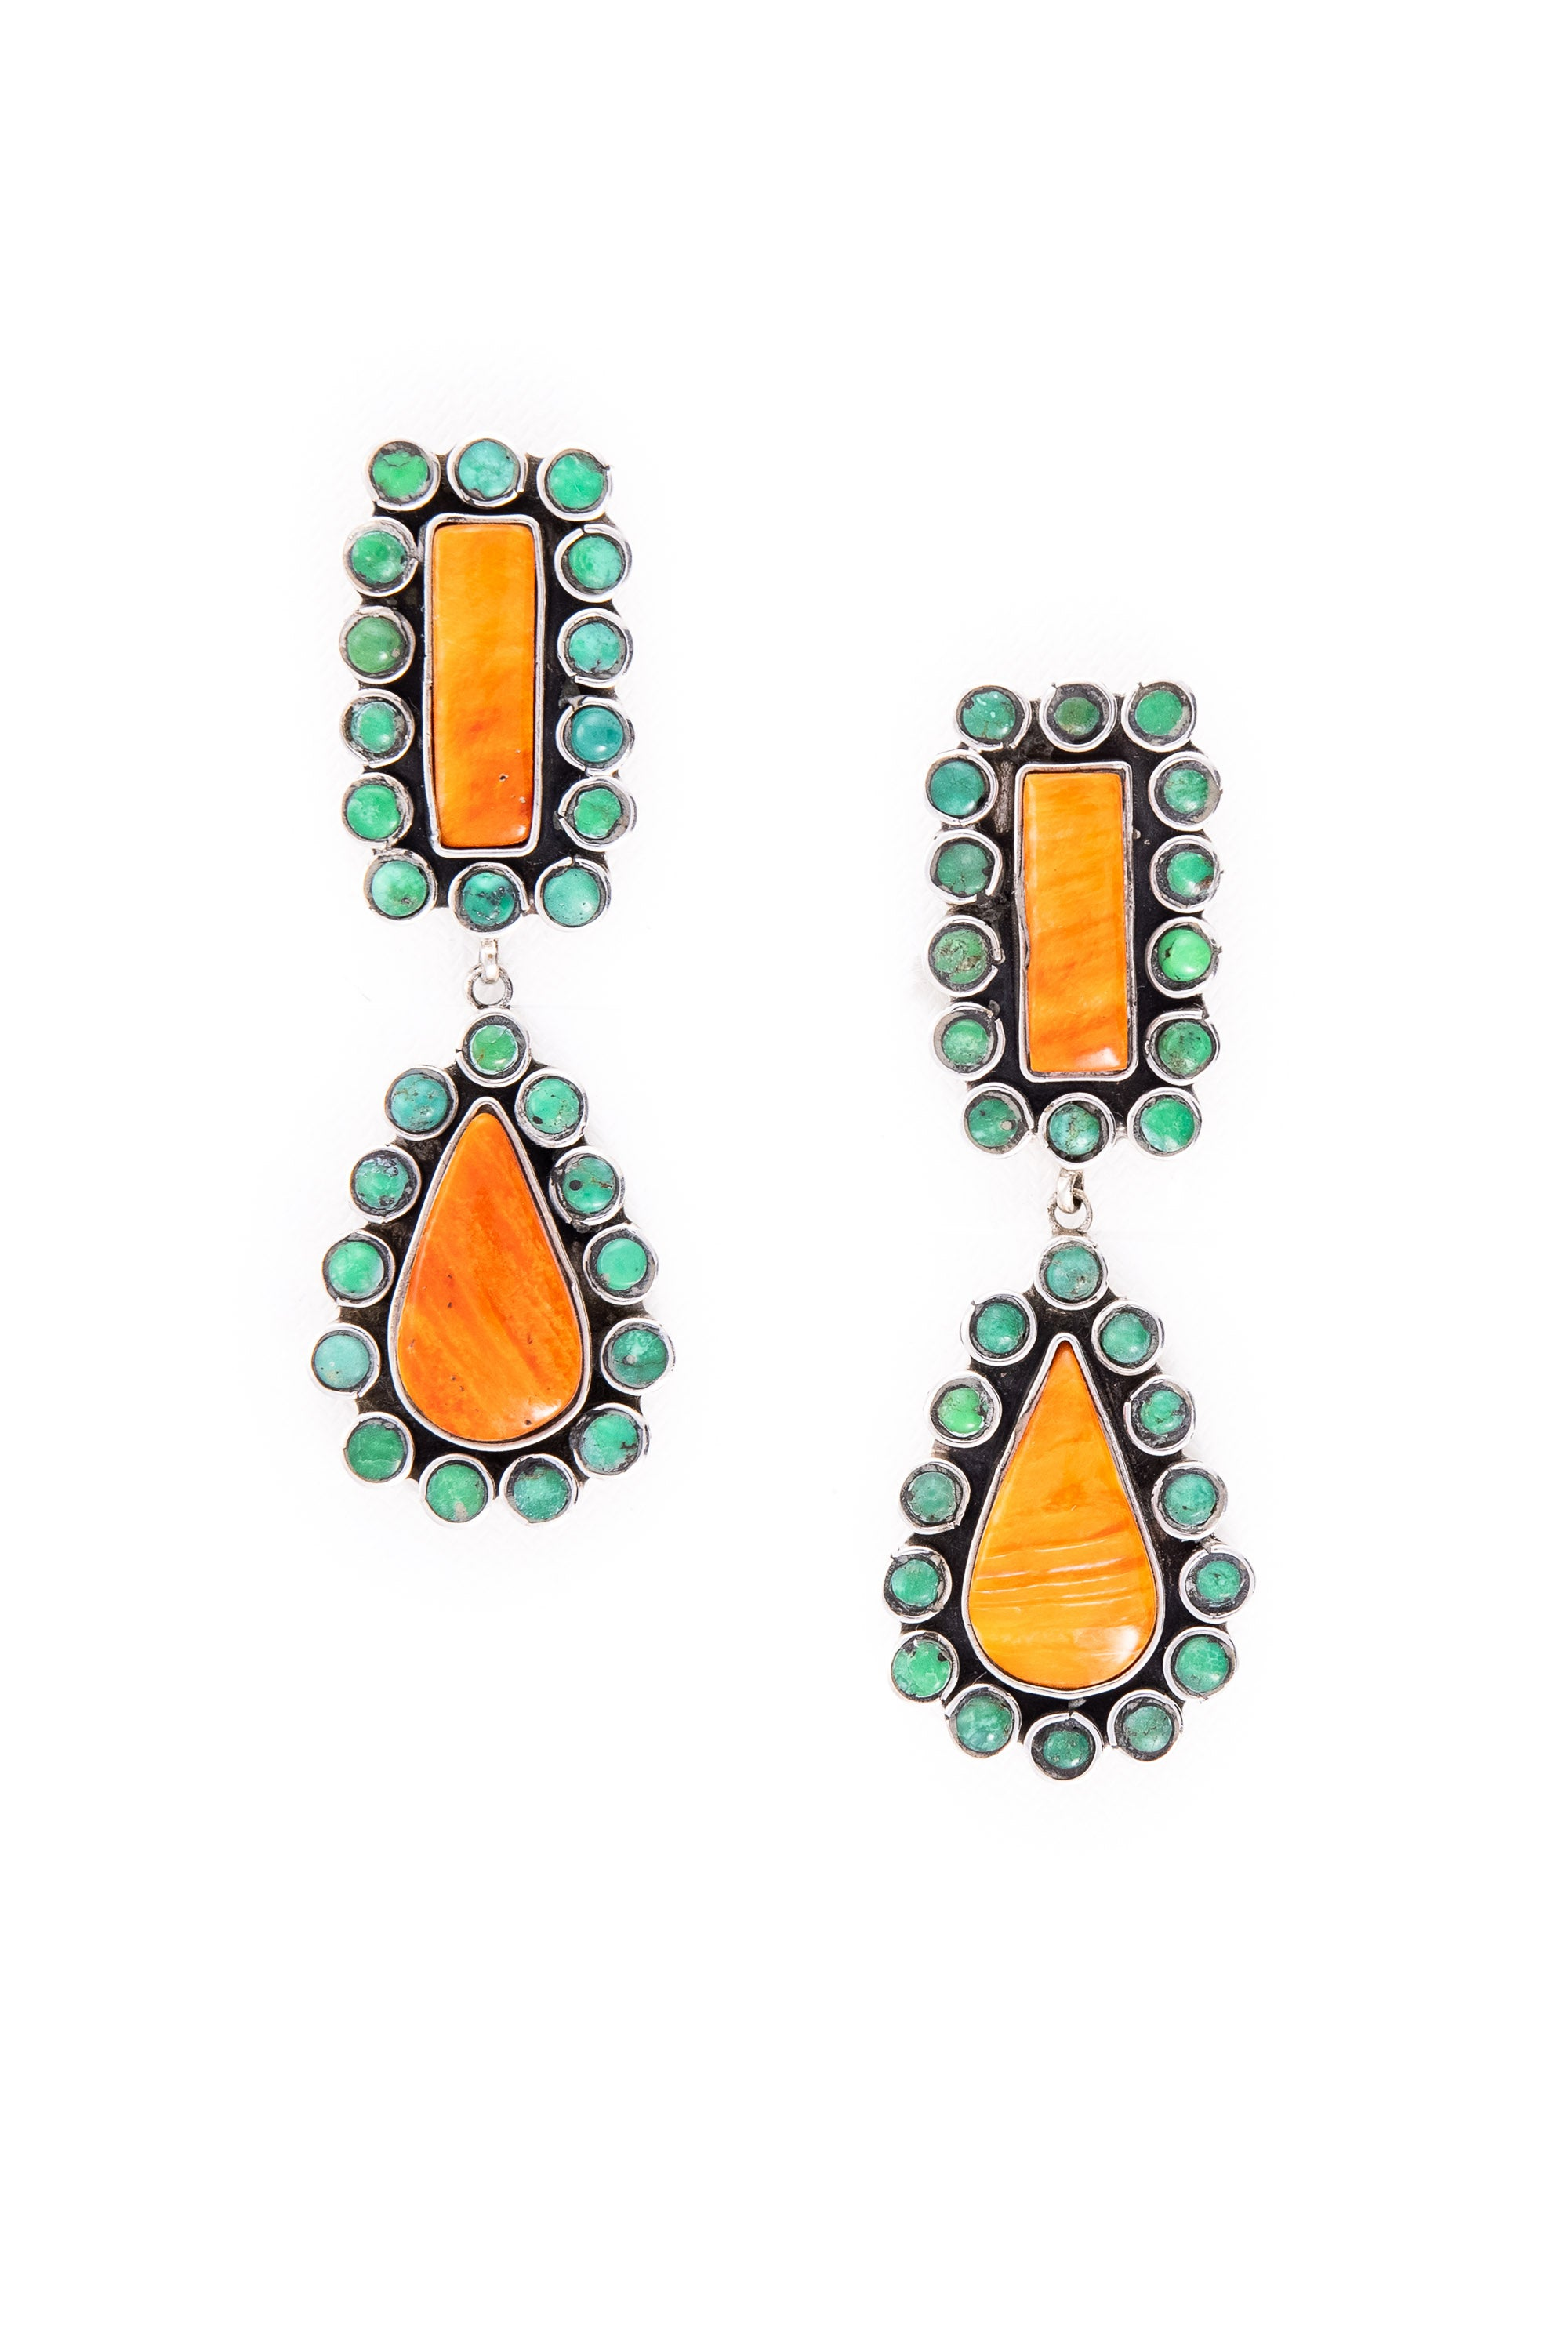 Earrings, Drop, Turquoise & Orange Spiny Oyster, Federico, Contemporary, 668